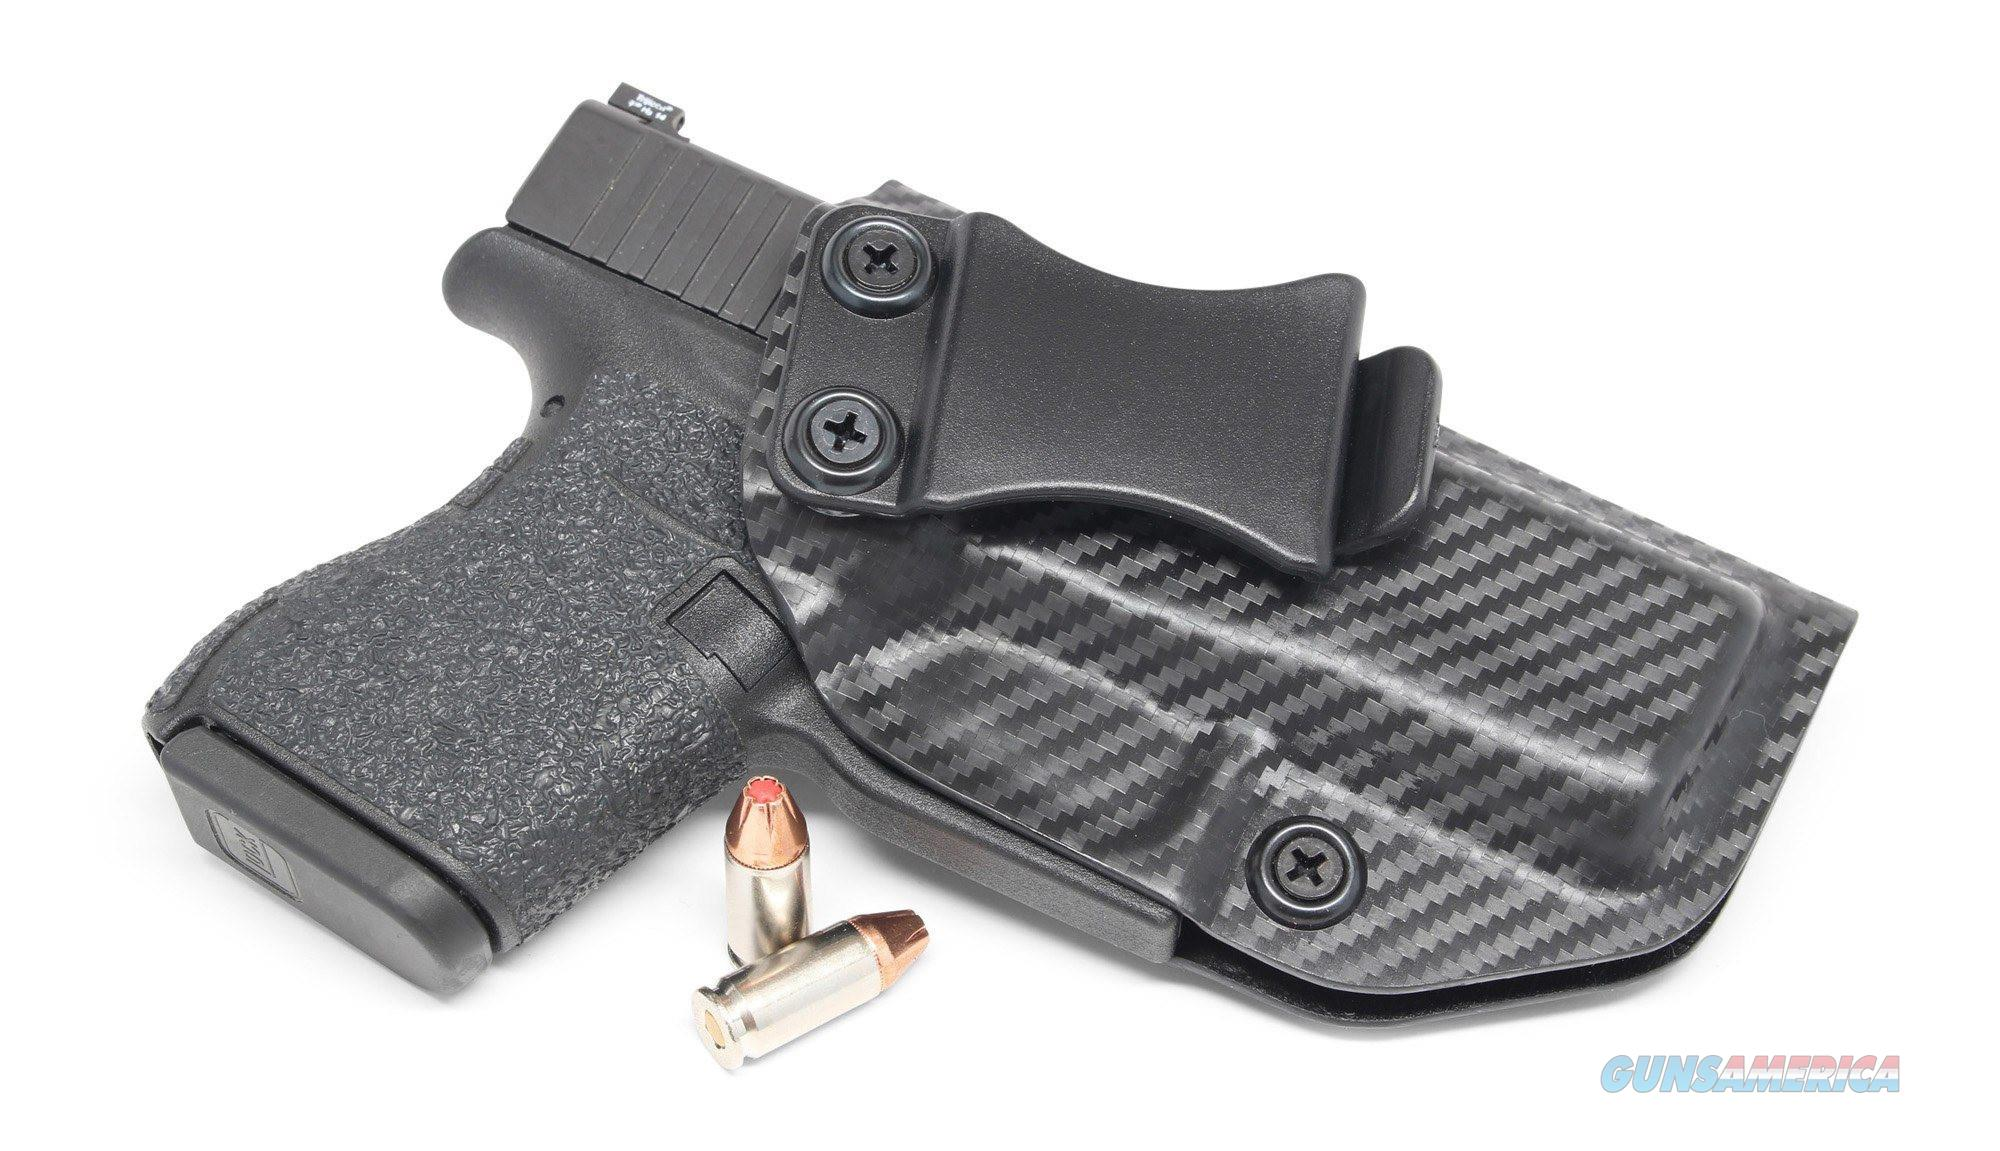 Concealment Express G43 IWB kydex holster Glock 43 Carbon Fiber Holster  Non-Guns > Holsters and Gunleather > Concealed Carry